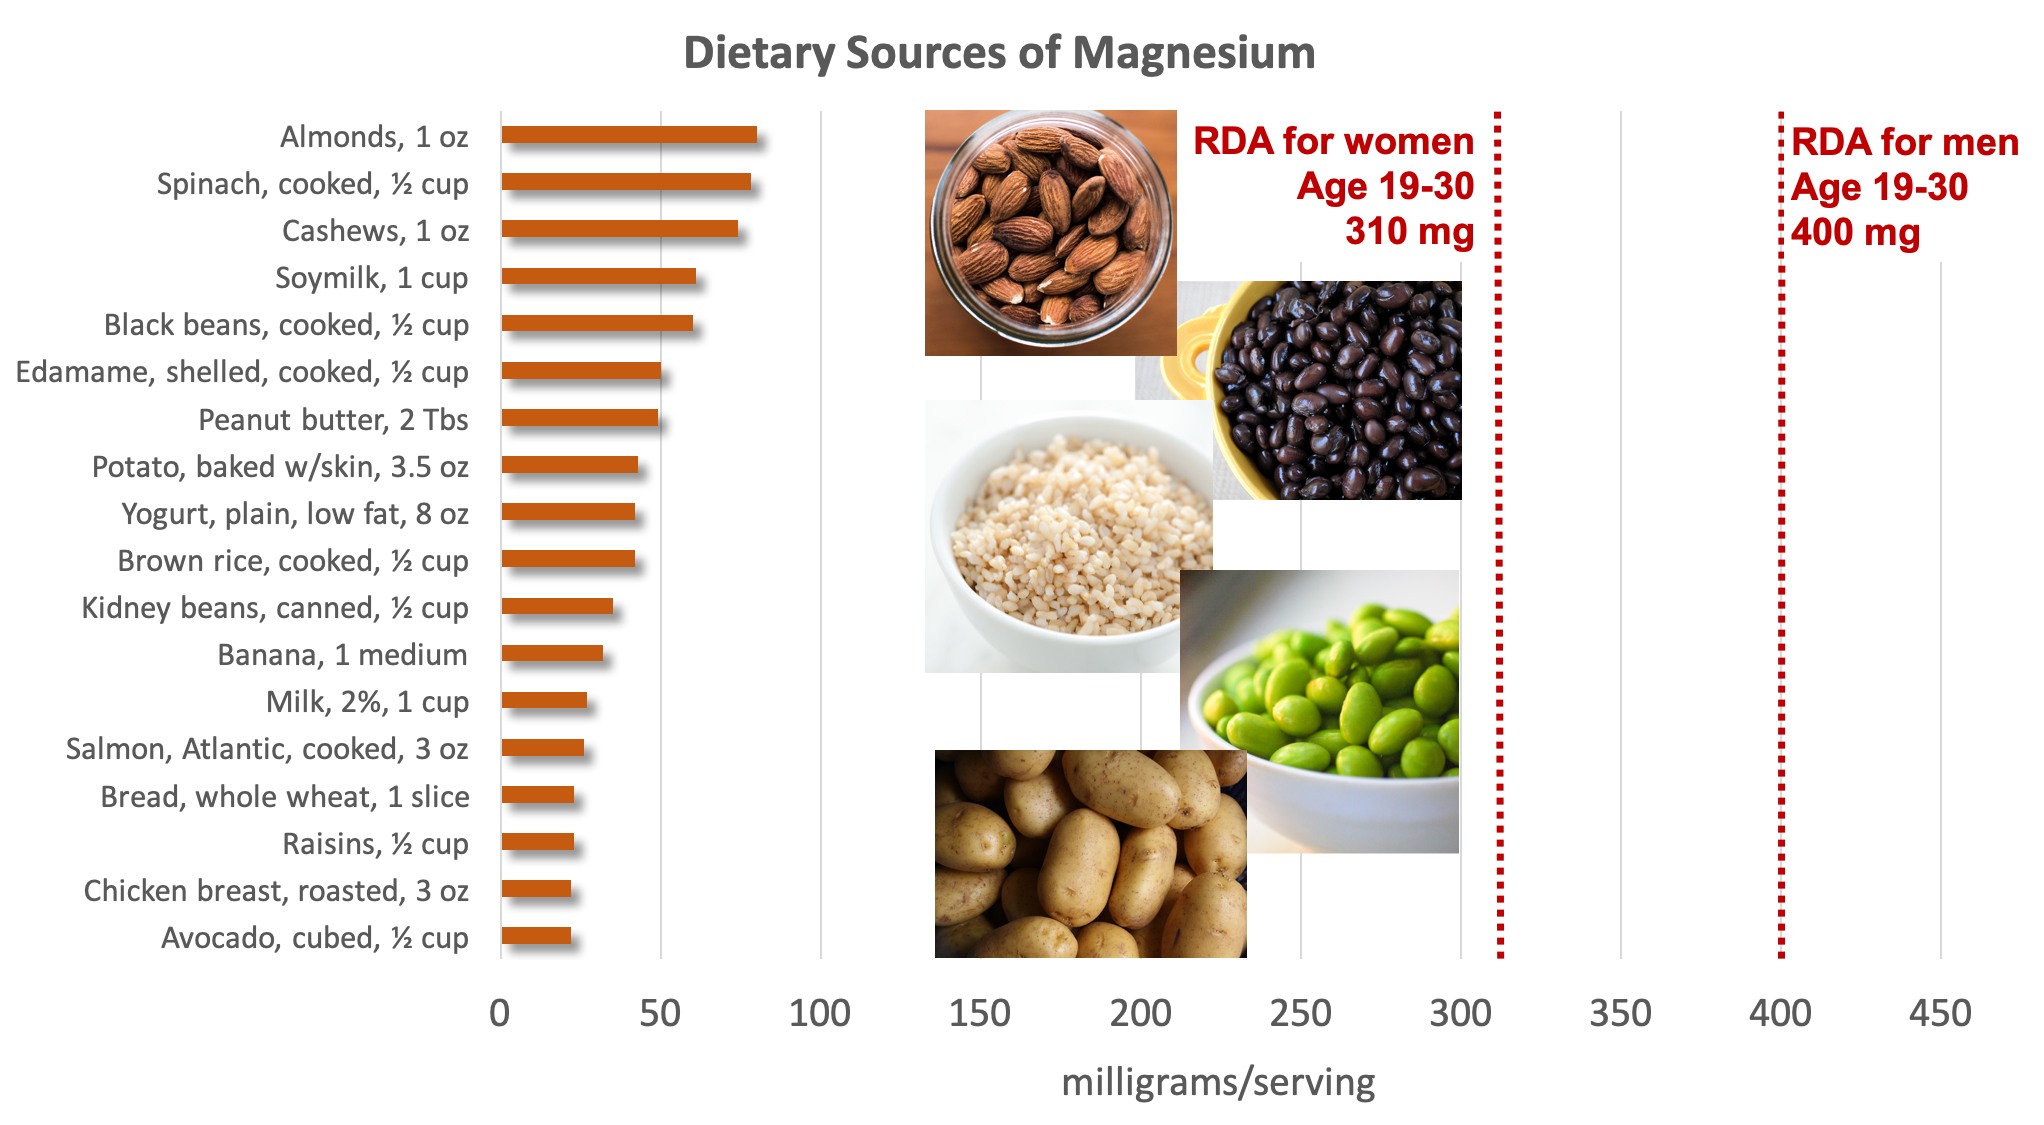 Bar graph showing dietary sources of magnesium compared with the RDA of 310 mg for women aged 19-30 and 400 mg for men aged 19-30. Top sources include nuts, leafy greens, soybeans and soymilk, beans, whole grains, potatoes, banana, milk, and fish. Food sources pictured include almonds, black beans, brown rice, edamame, and potatoes.